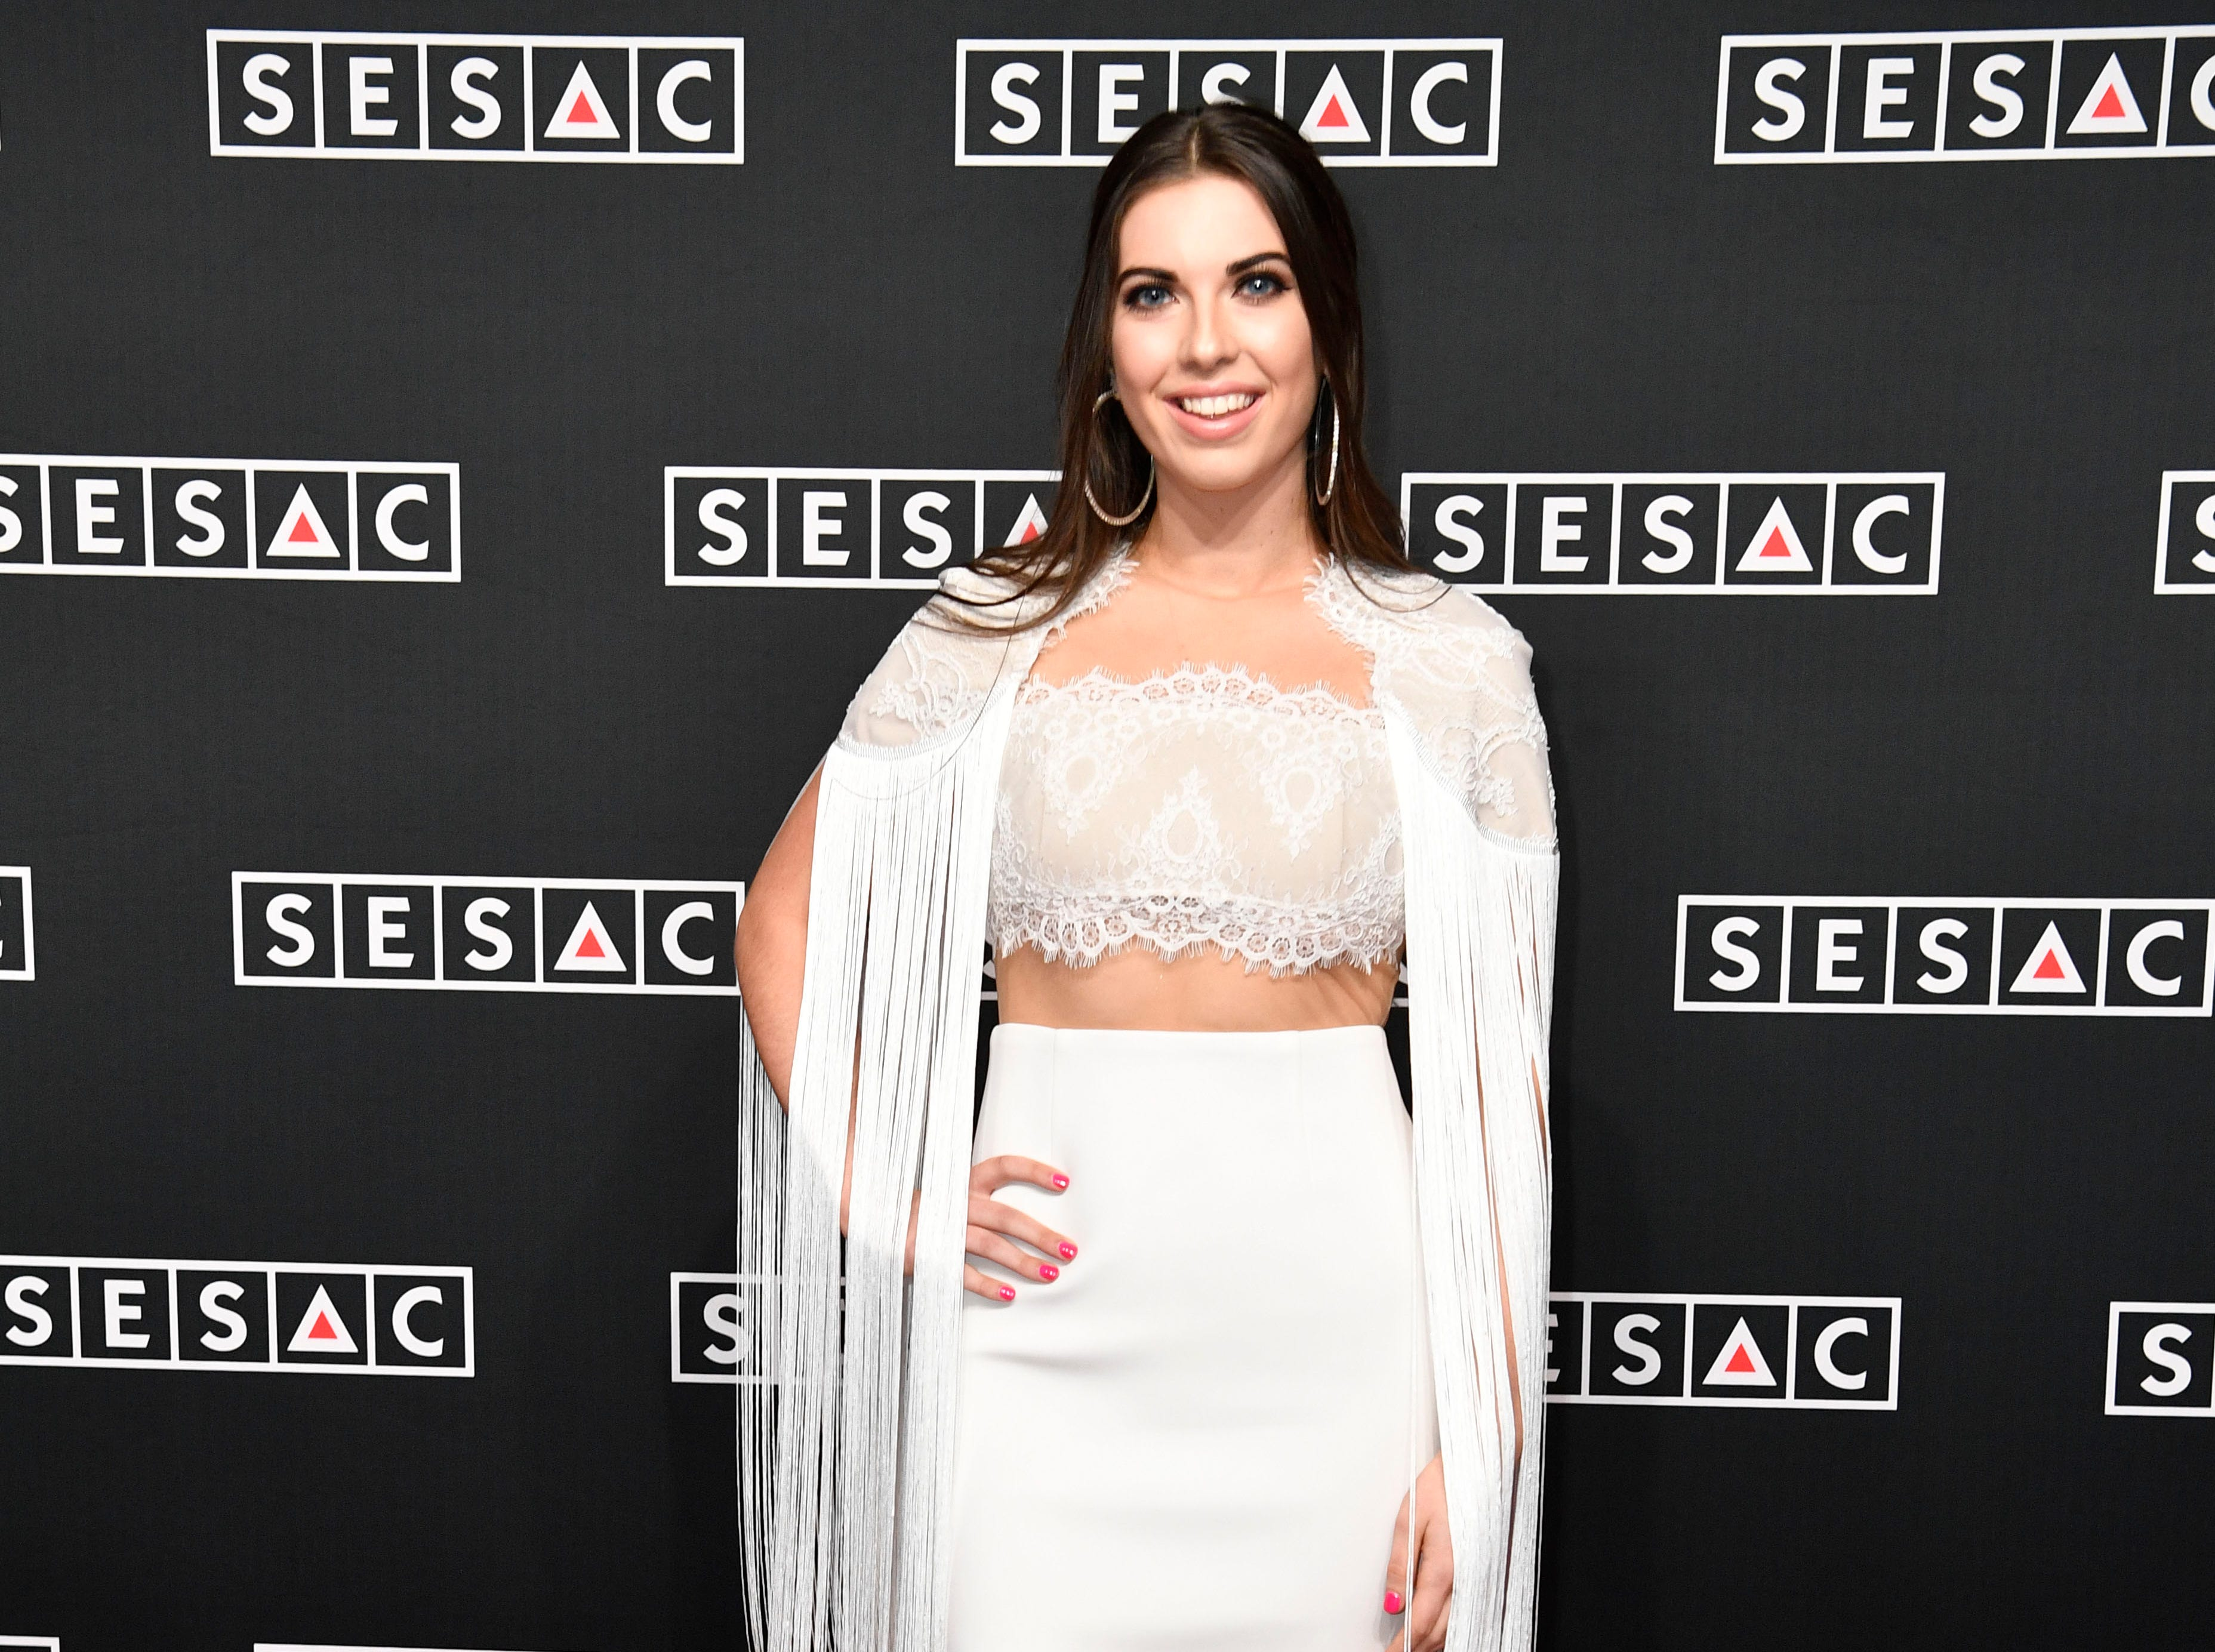 Jenny Tolman on the red carpet at the SESAC Nashville Music Awards at the Country Music Hall of Fame and Museum Sunday Nov. 11, 2018, in Nashville, Tenn.